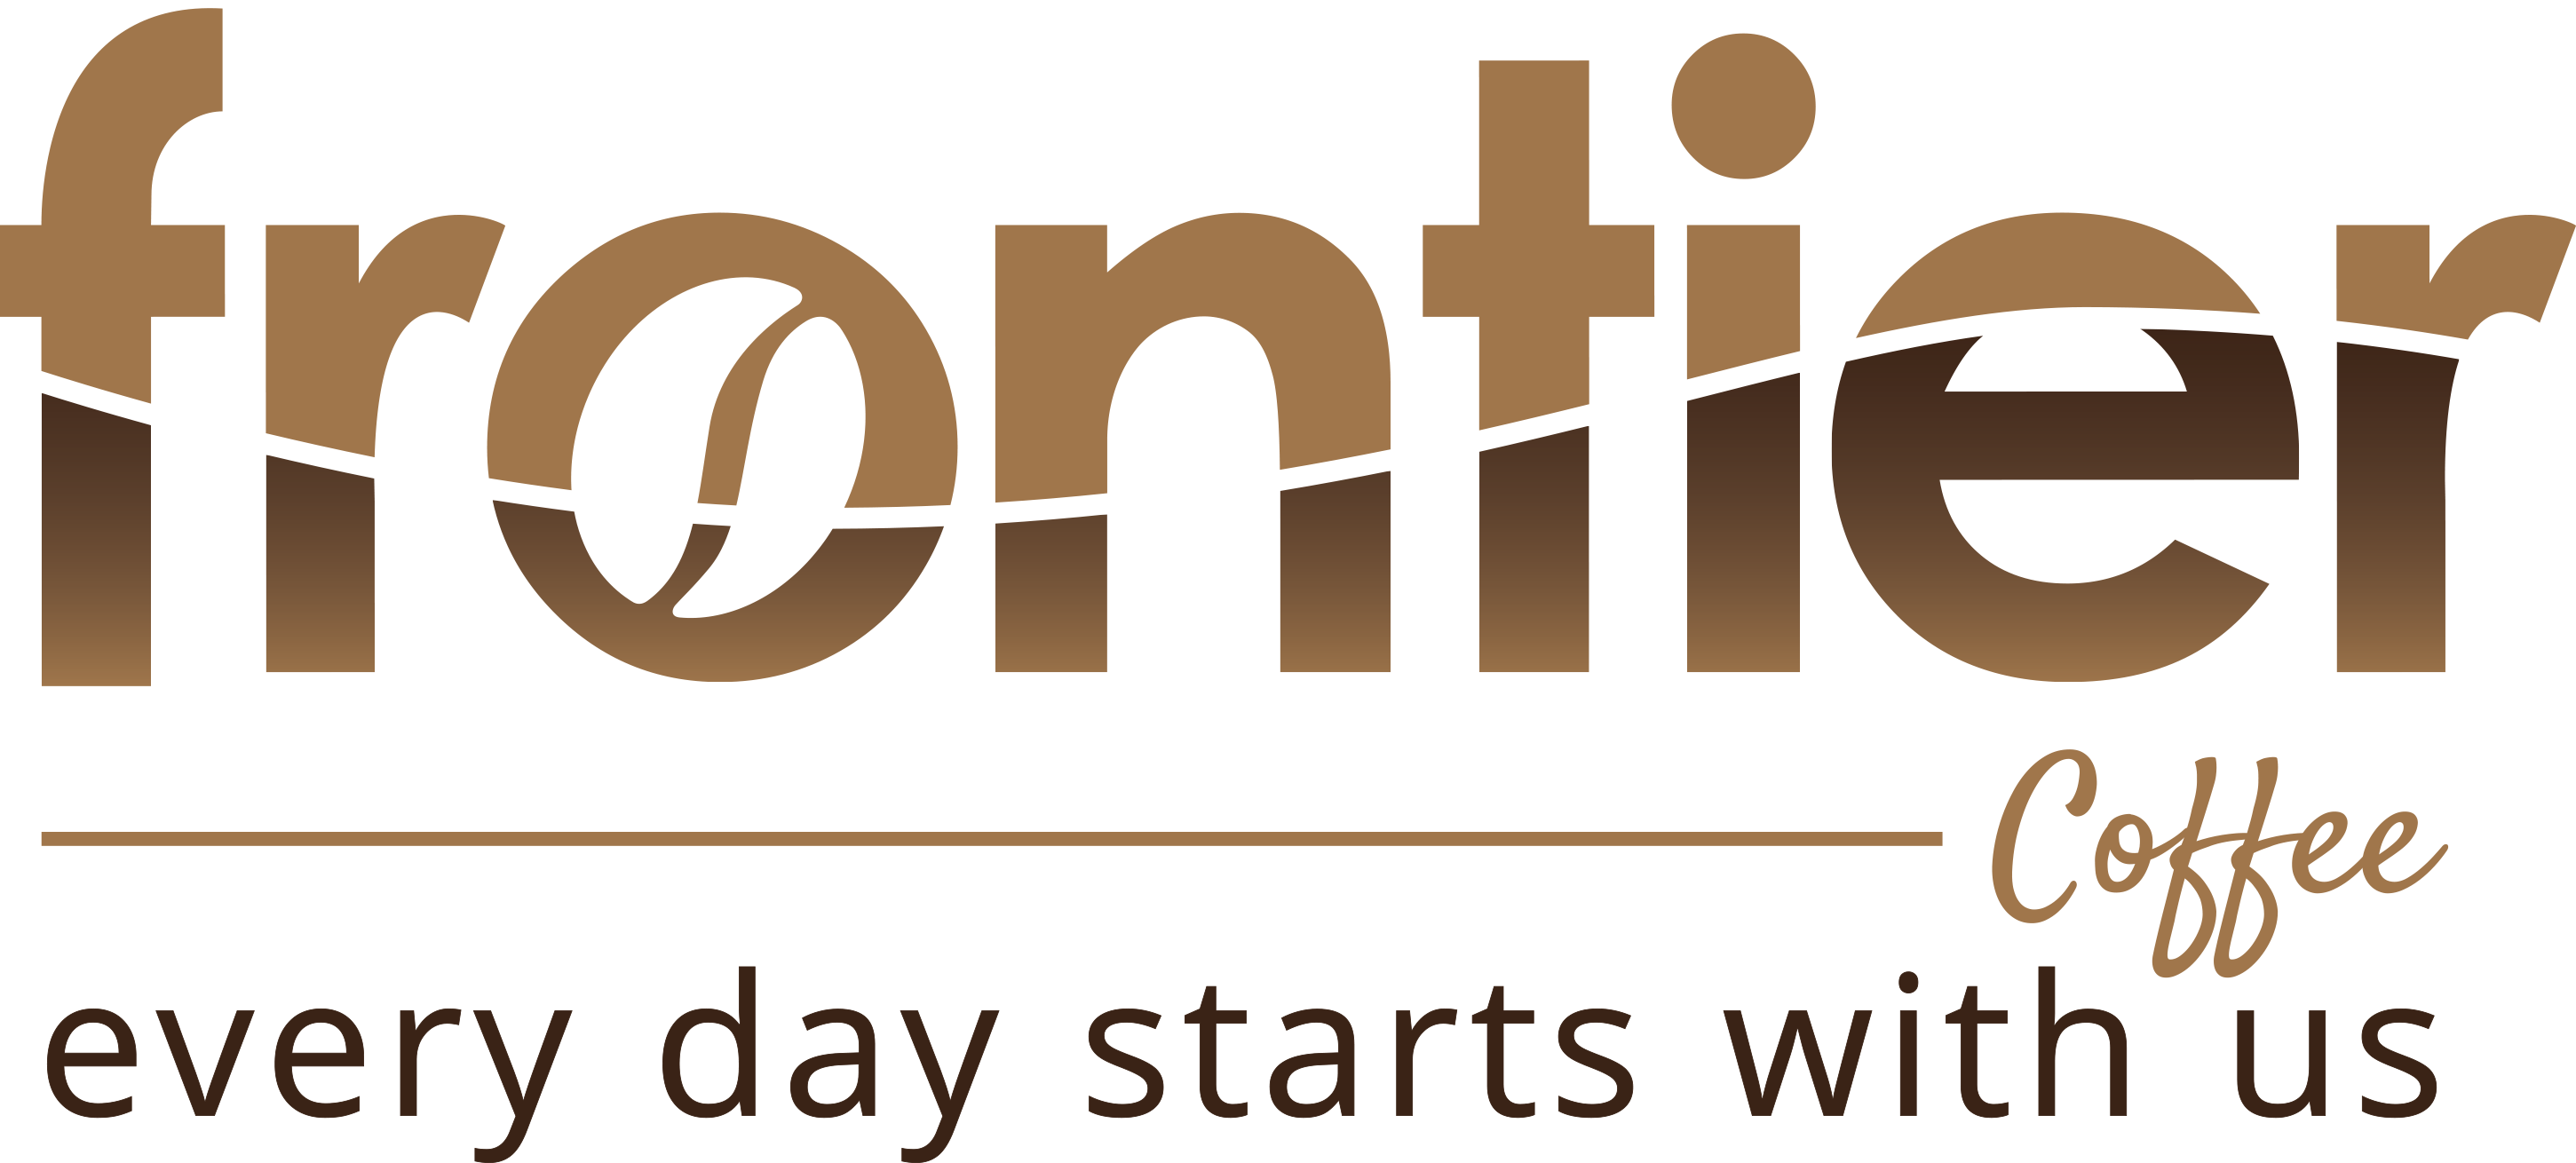 Frontier Coffee Vending International Beverages, Food and